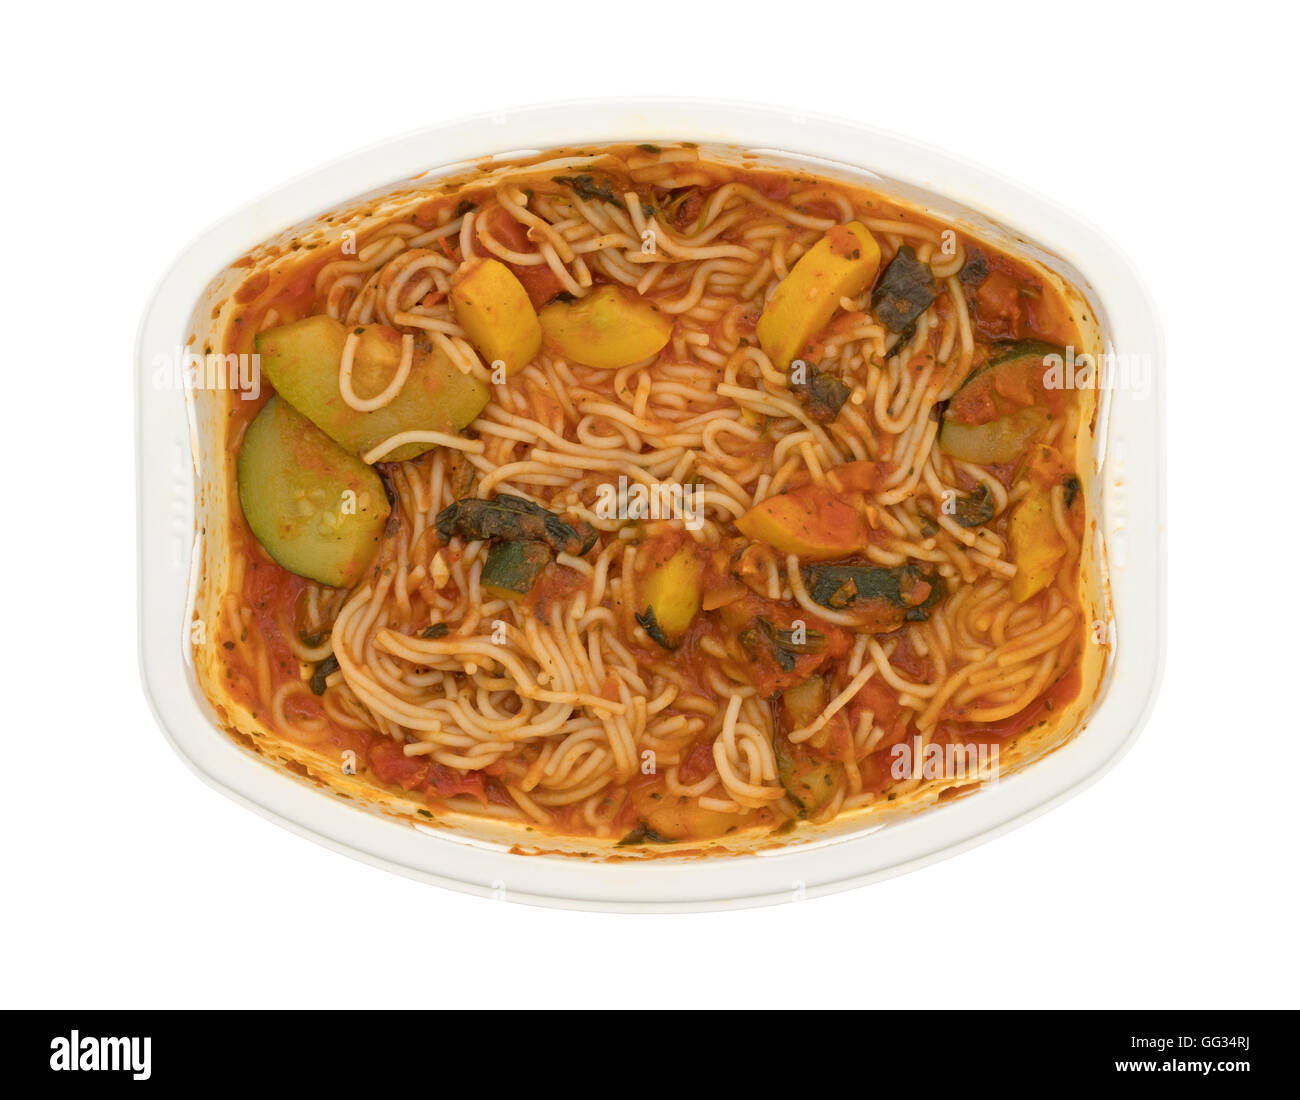 A cooked TV dinner of angel hair pasta with zucchini and spinach in a microwaveable tray on a white background. - Stock Image